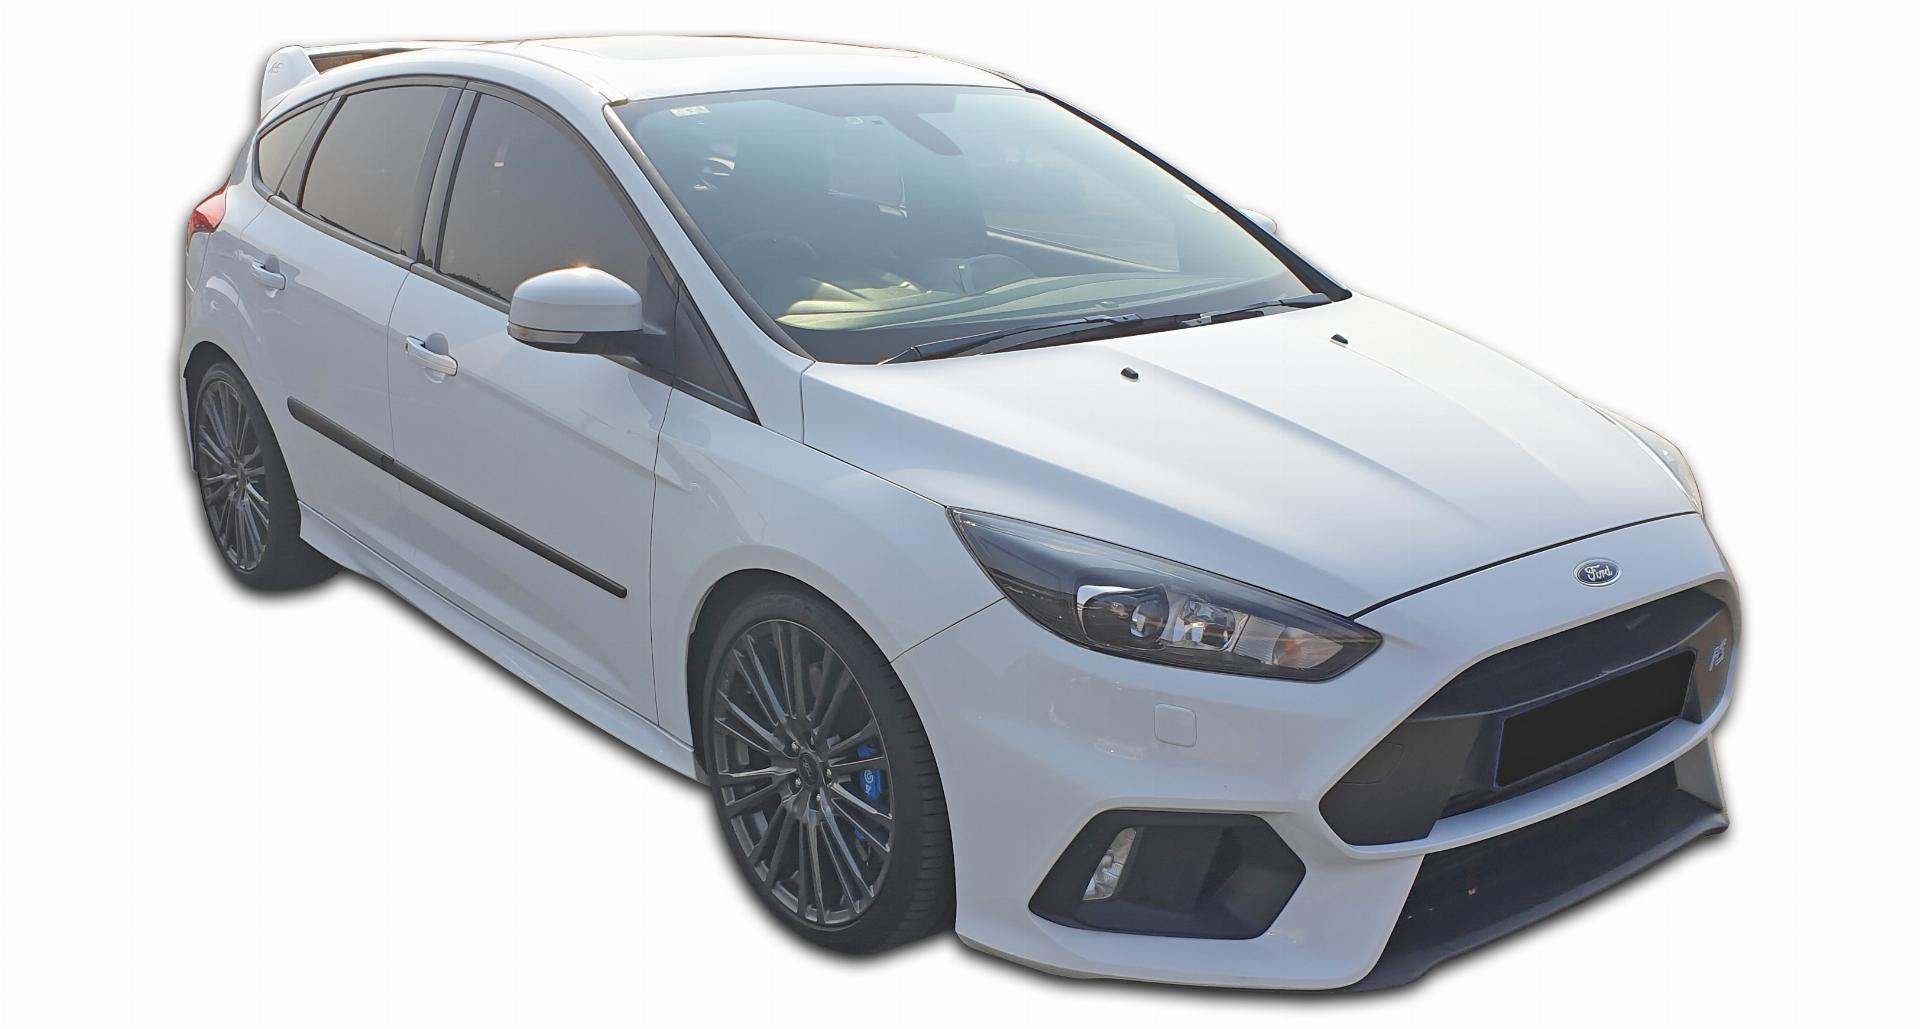 Ford Focus Awd 2.3 Ecoboost RS